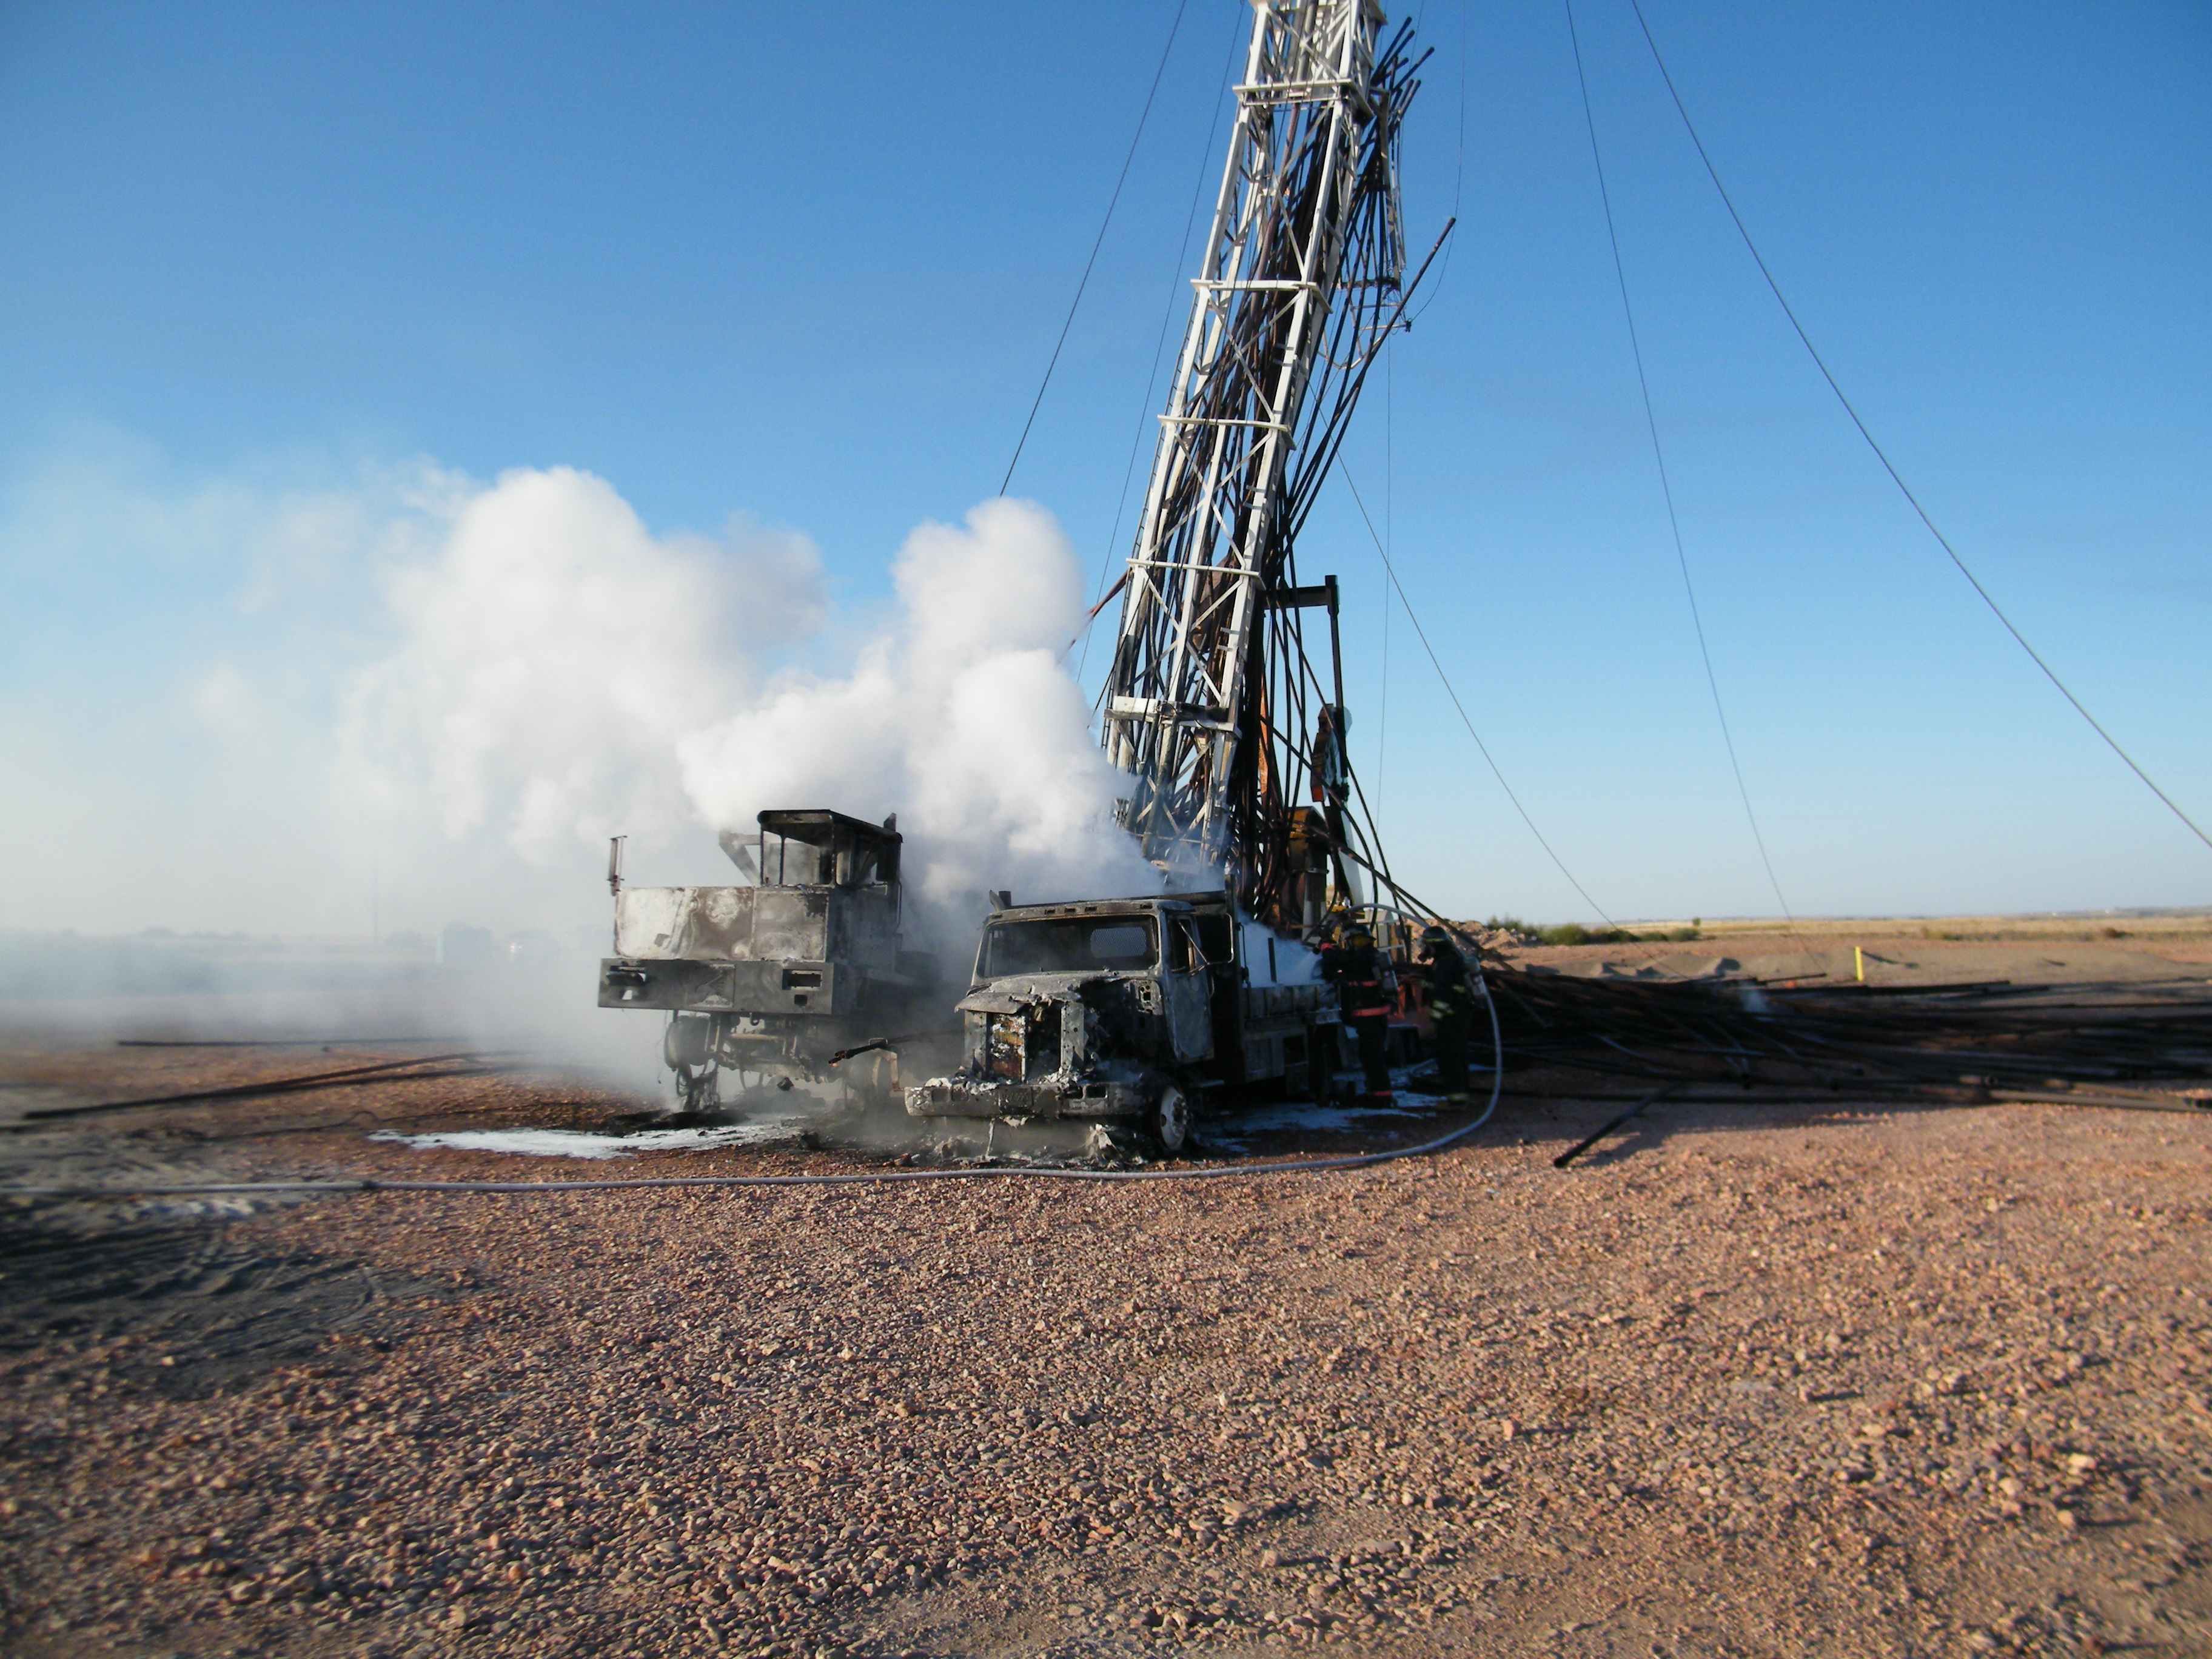 Spate Of Oil Field Deaths Prompts New Study Of Workplace